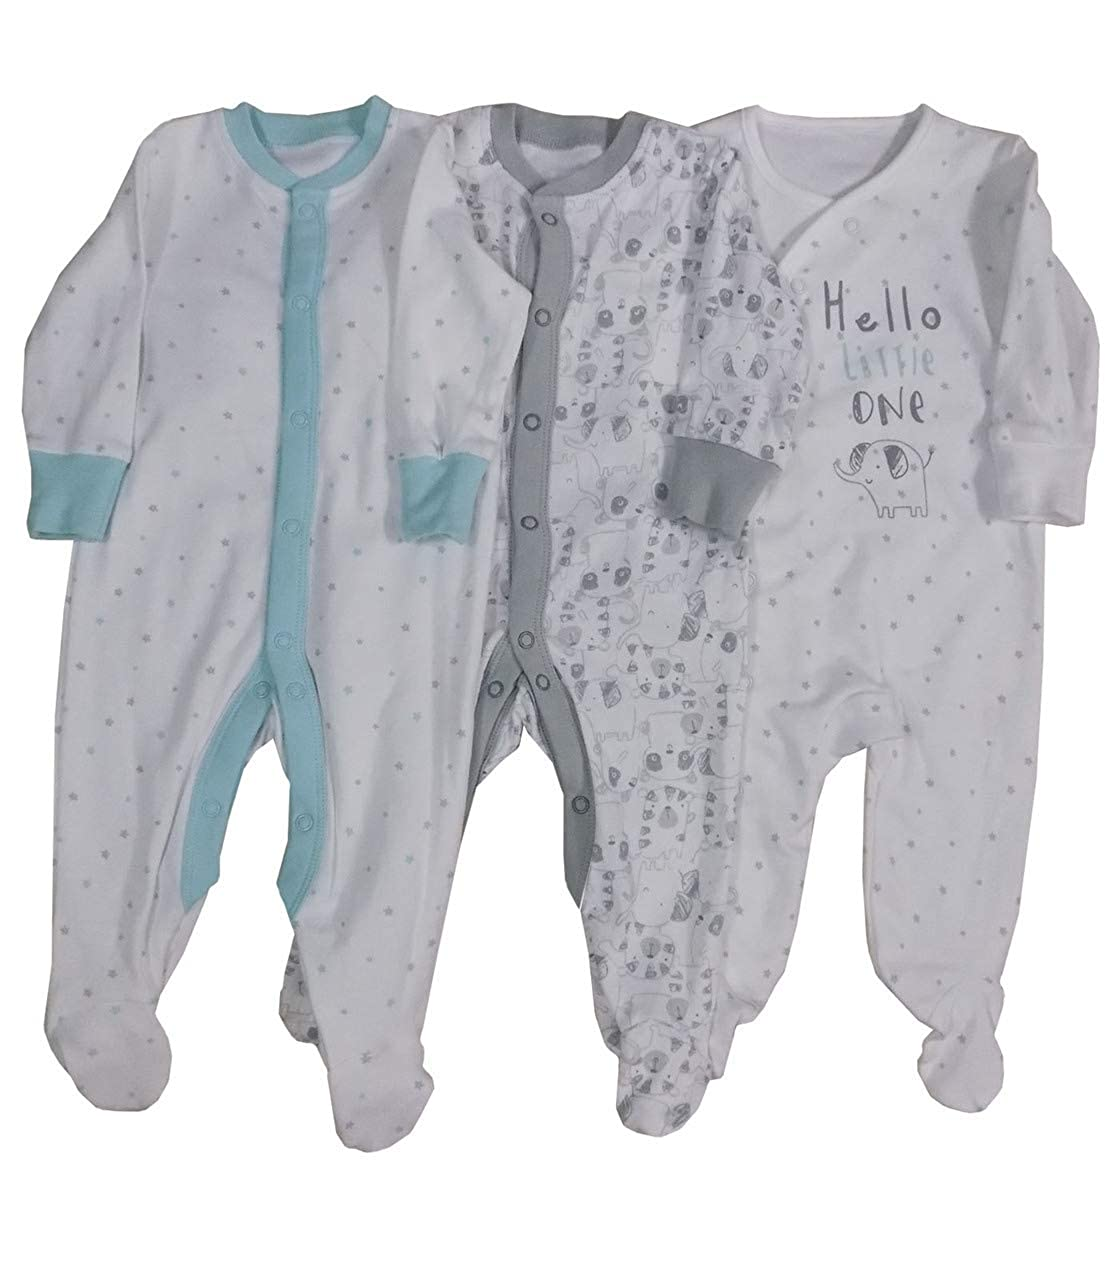 BABY BOYS GIRLS 3 PACK SLEEPSUITS EX STORE 100/% COTTON BABYGROWS 1-24M NEW